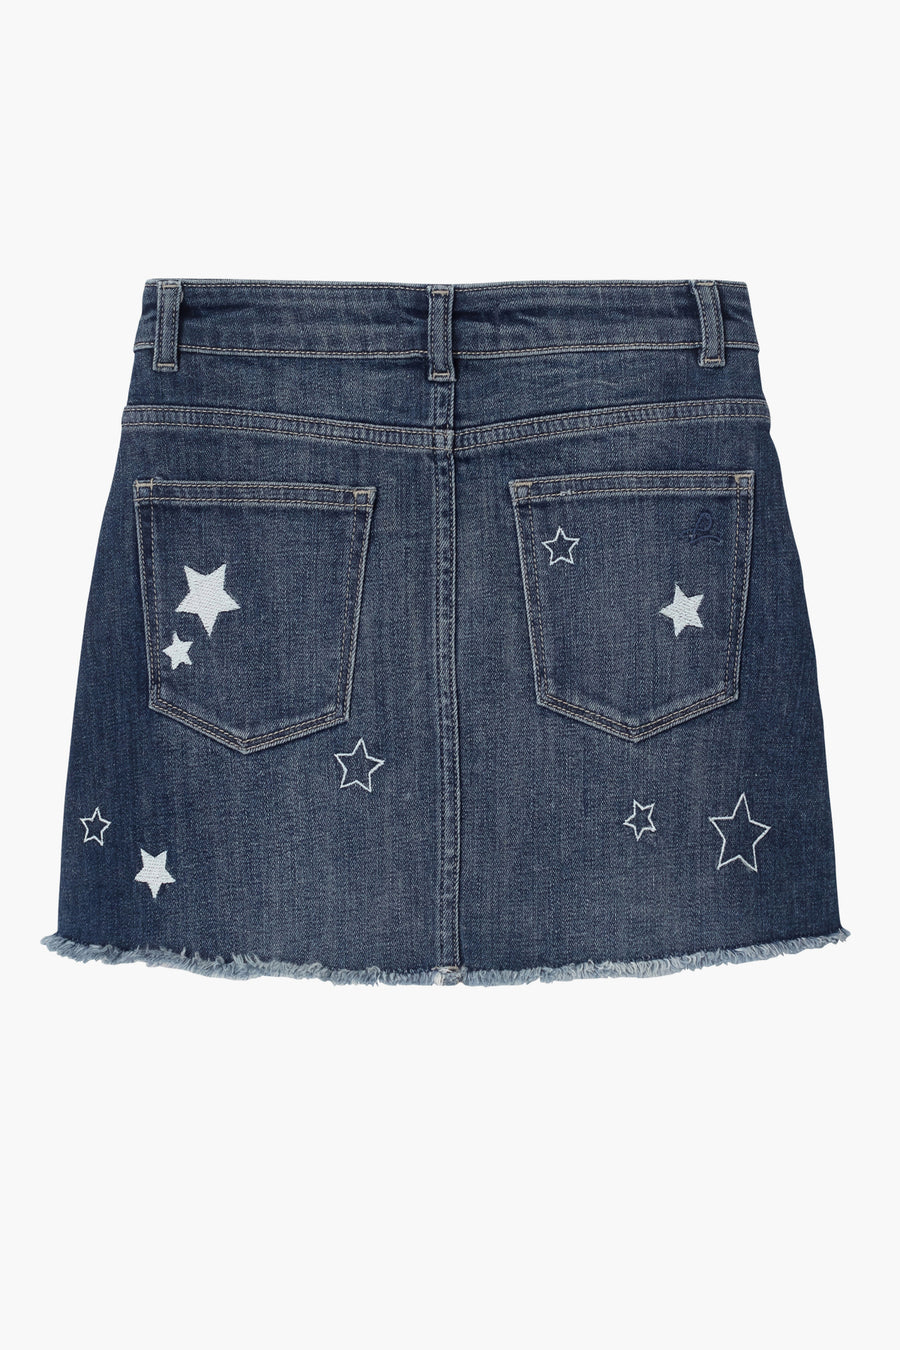 DL1961 Star Jean Jenny Skirt